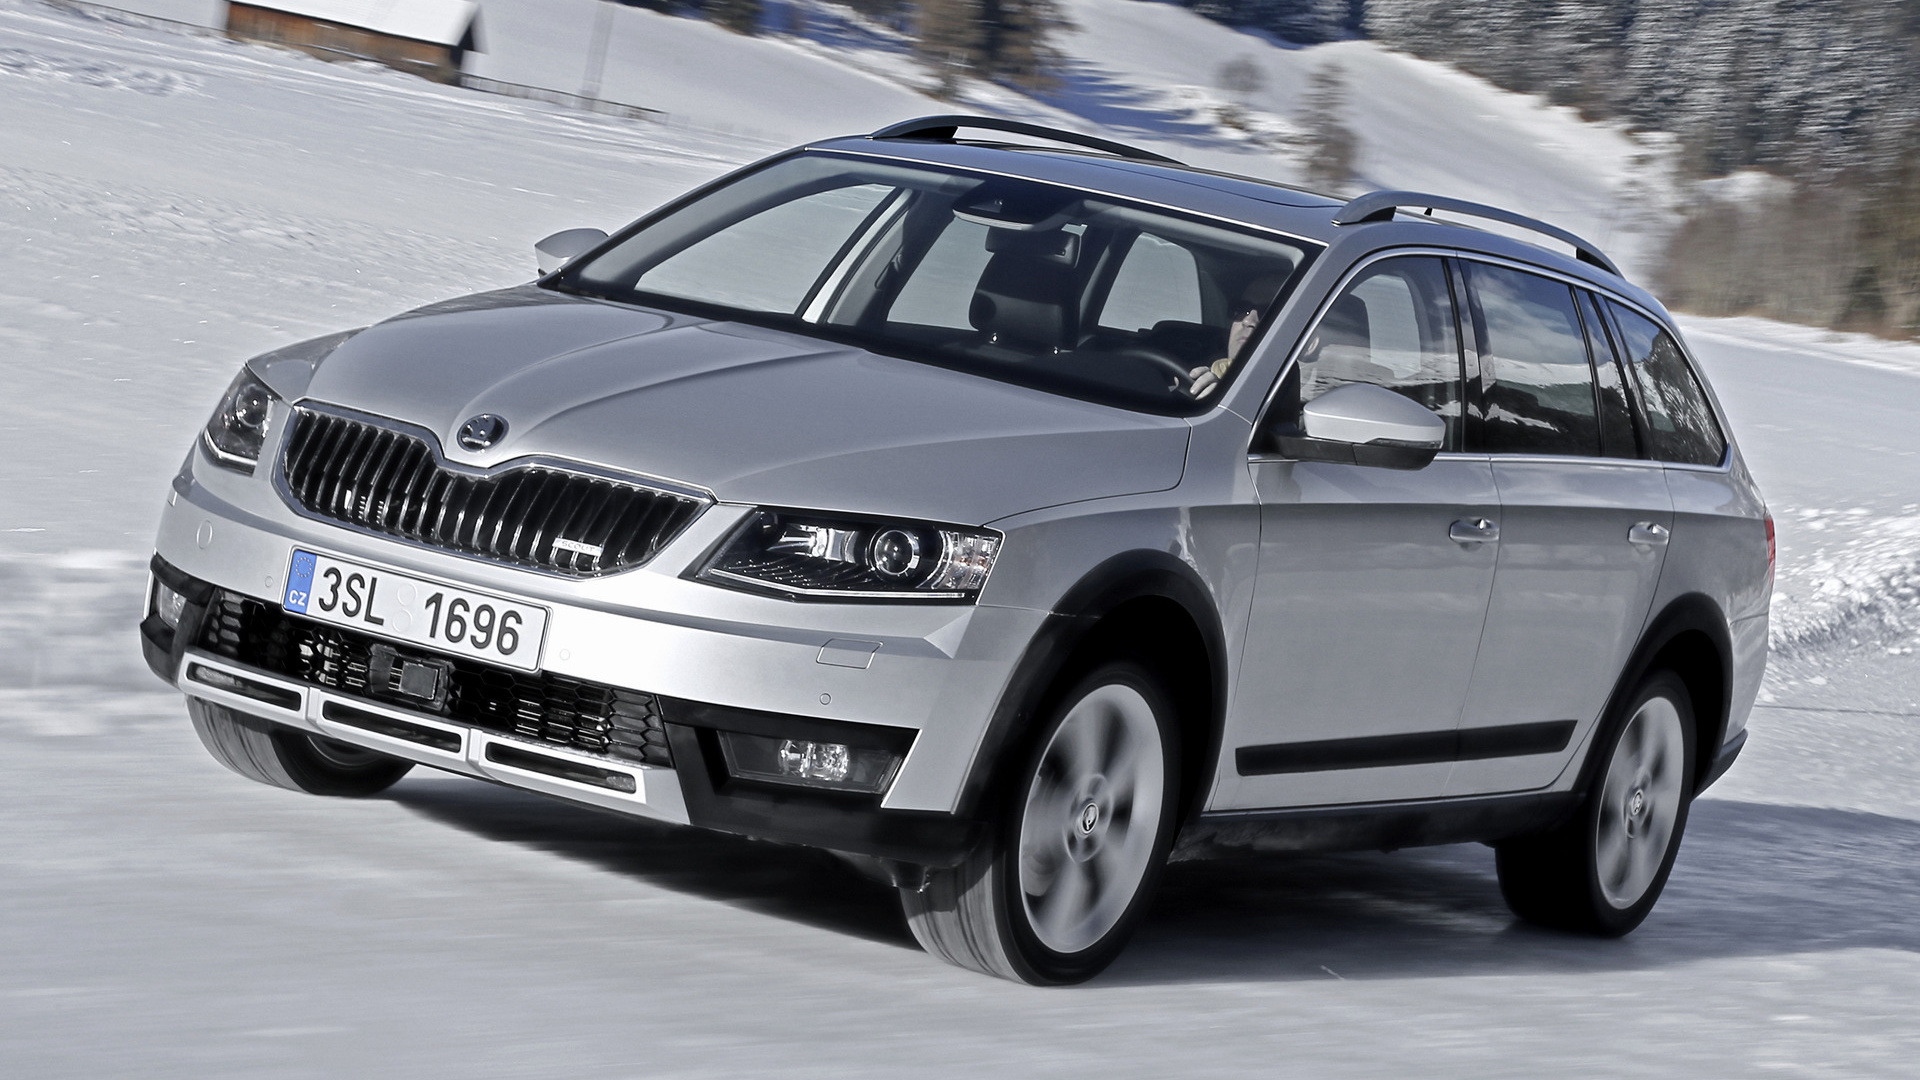 skoda octavia scout 2014 wallpapers and hd images car pixel. Black Bedroom Furniture Sets. Home Design Ideas